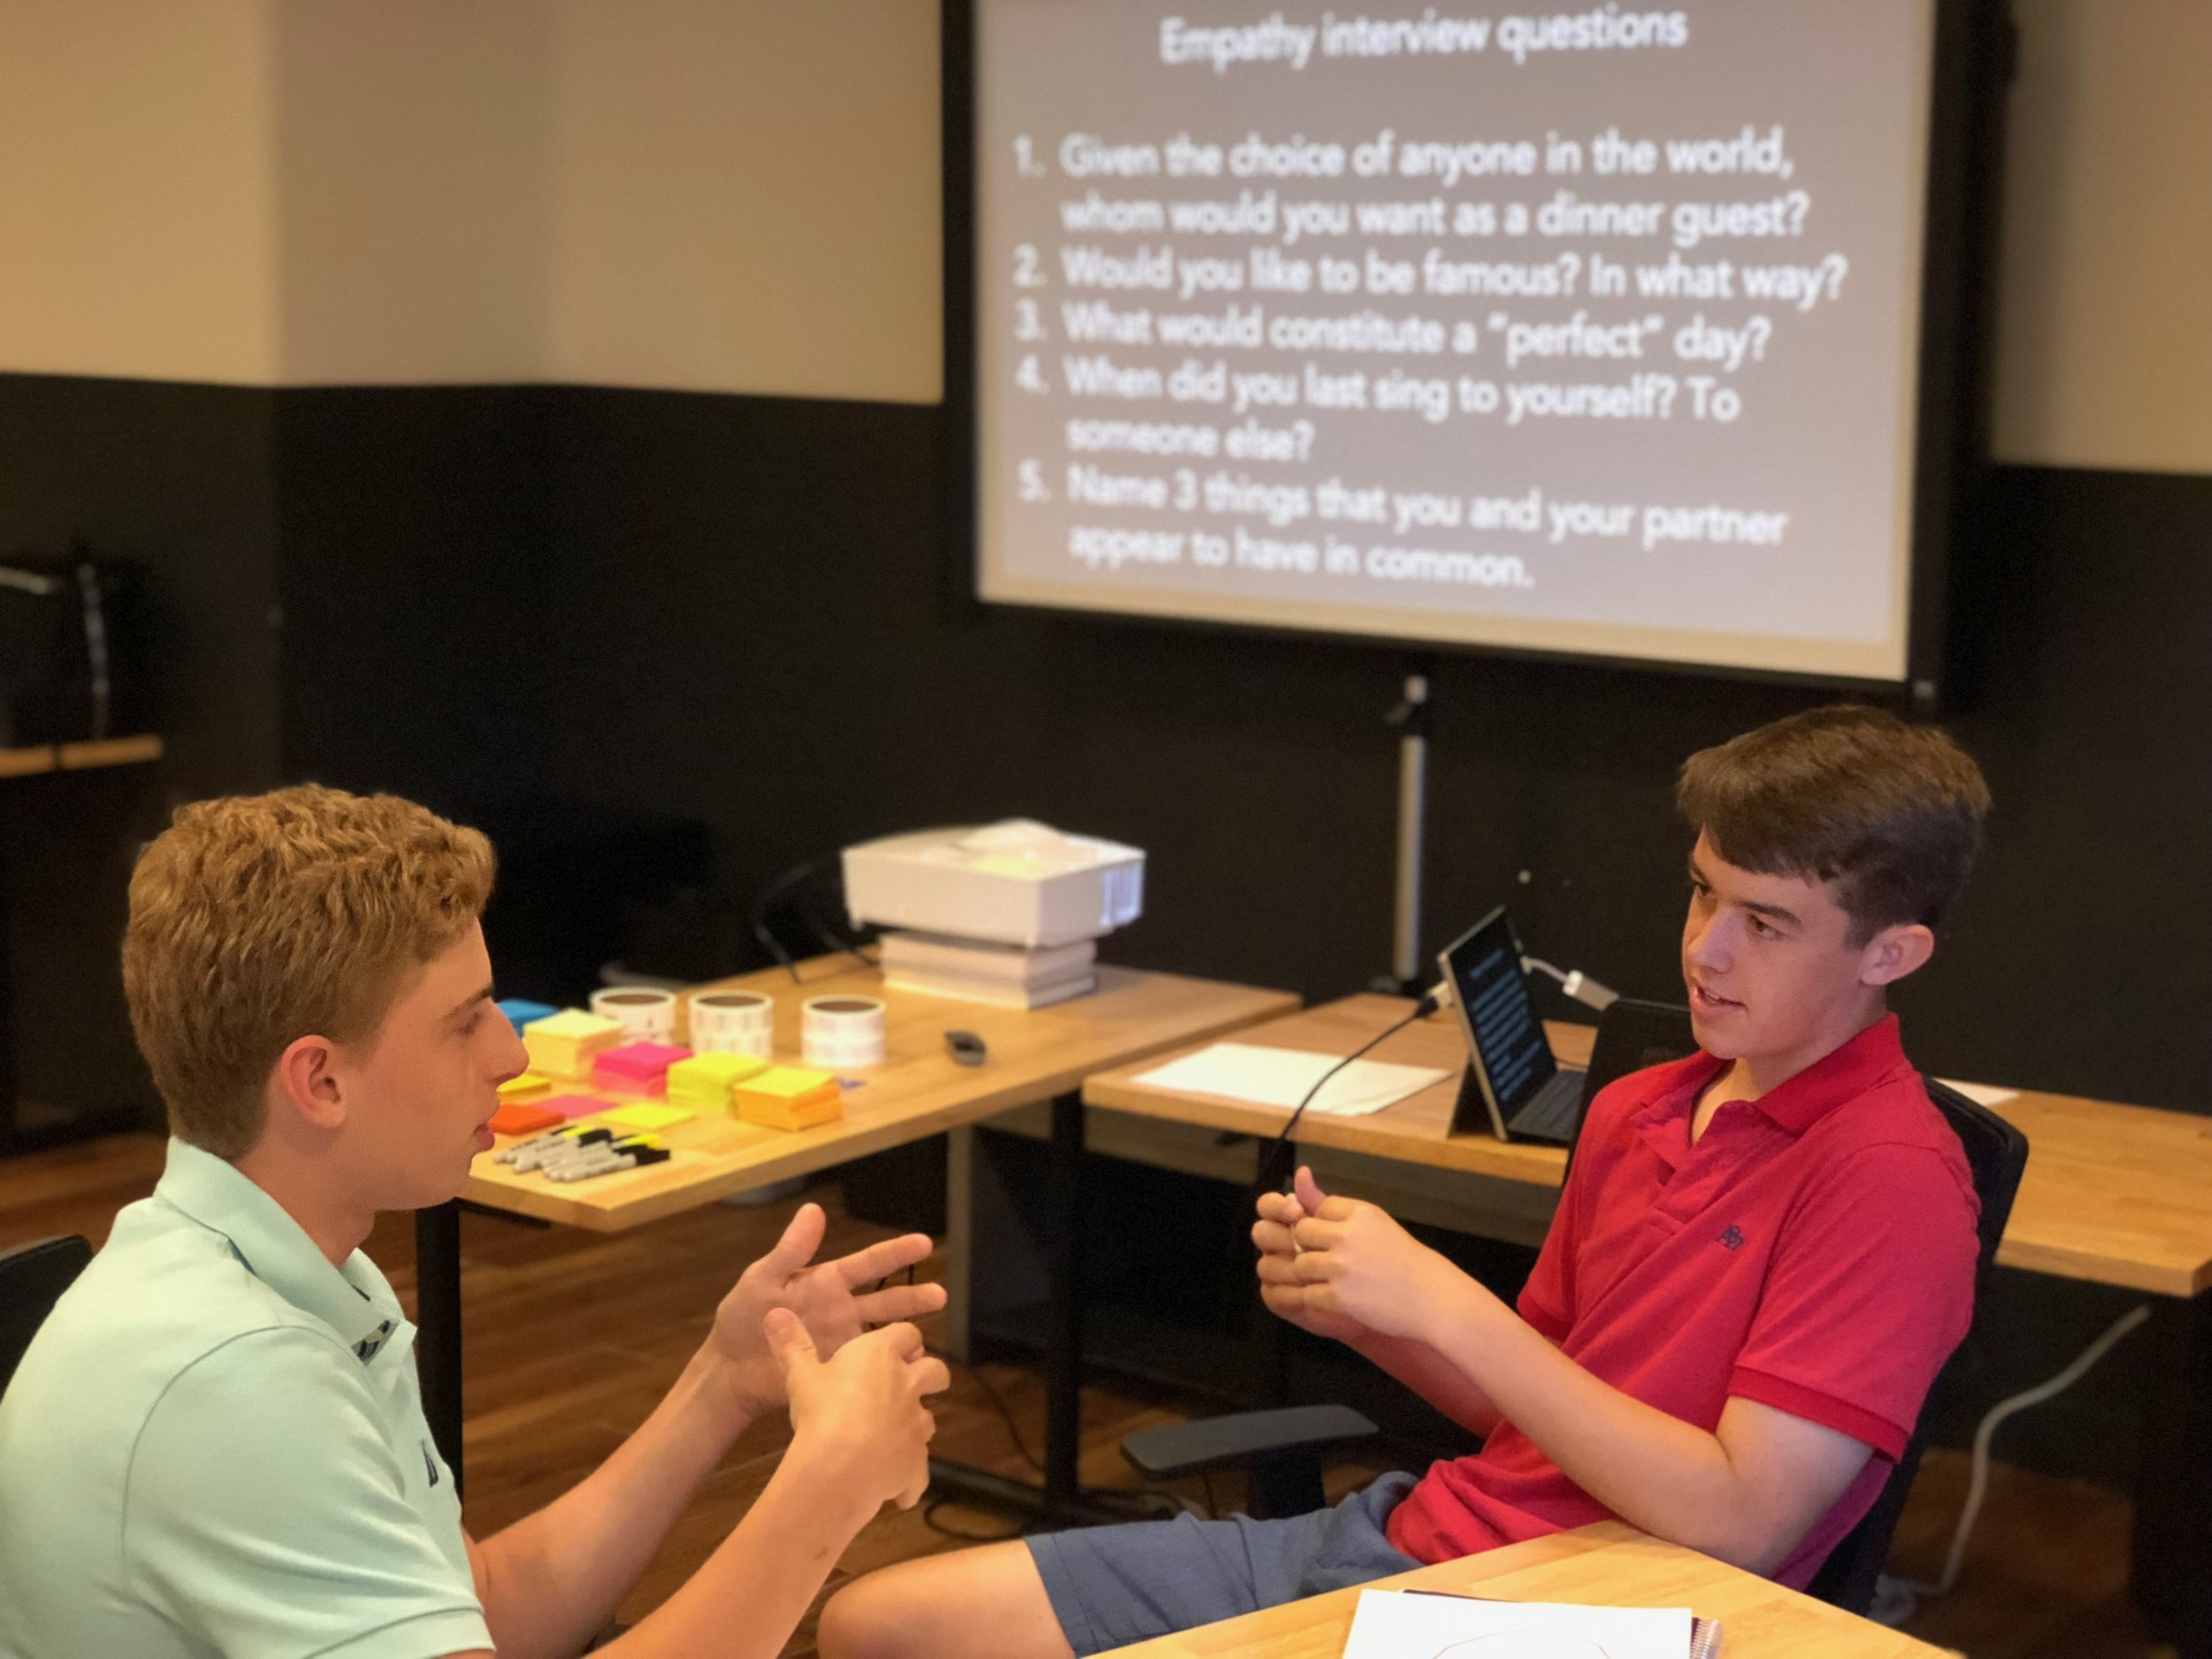 Regis High School teammates do empathy interviews to get to know one another better. This exercise also prepares them to do empathy research as they imagine the user whom they want to serve.